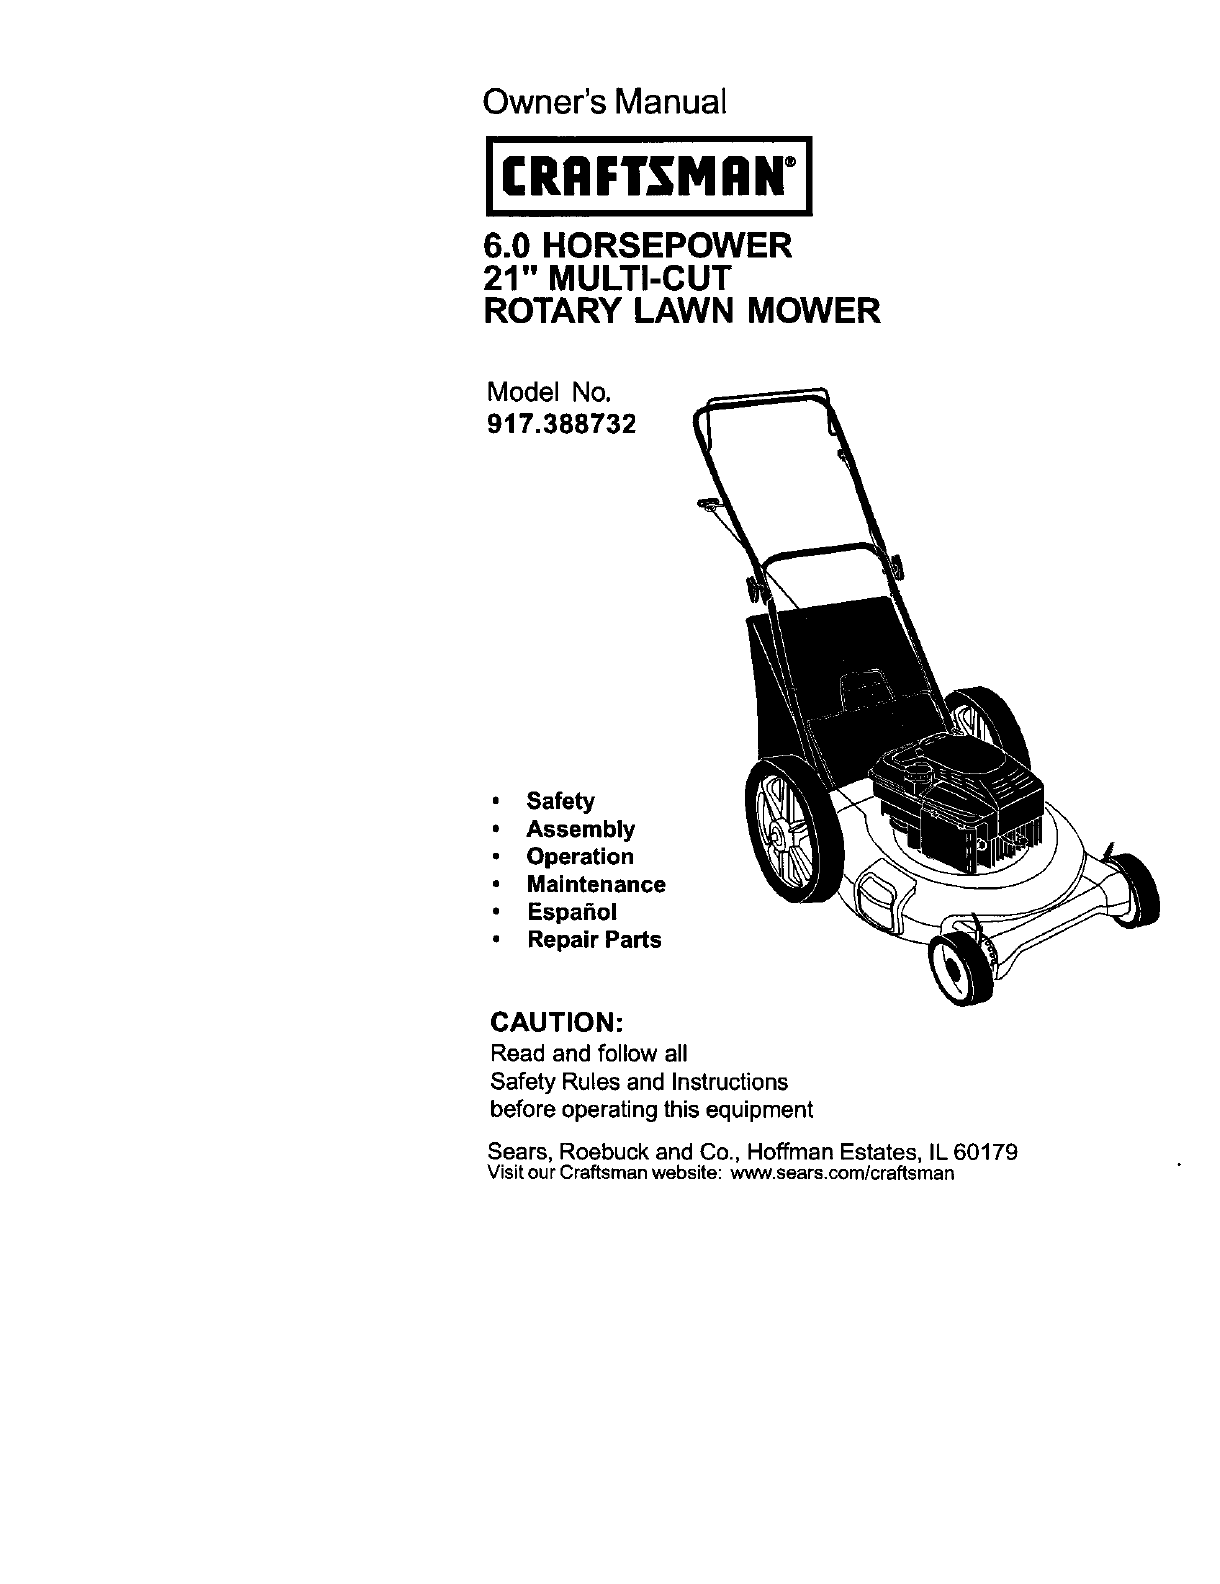 craftsman lawn mower 917 388732 user guide manualsonline com rh manualsonline com Craftsman Instruction Manual Craftsman Snow Blower Parts Manuals